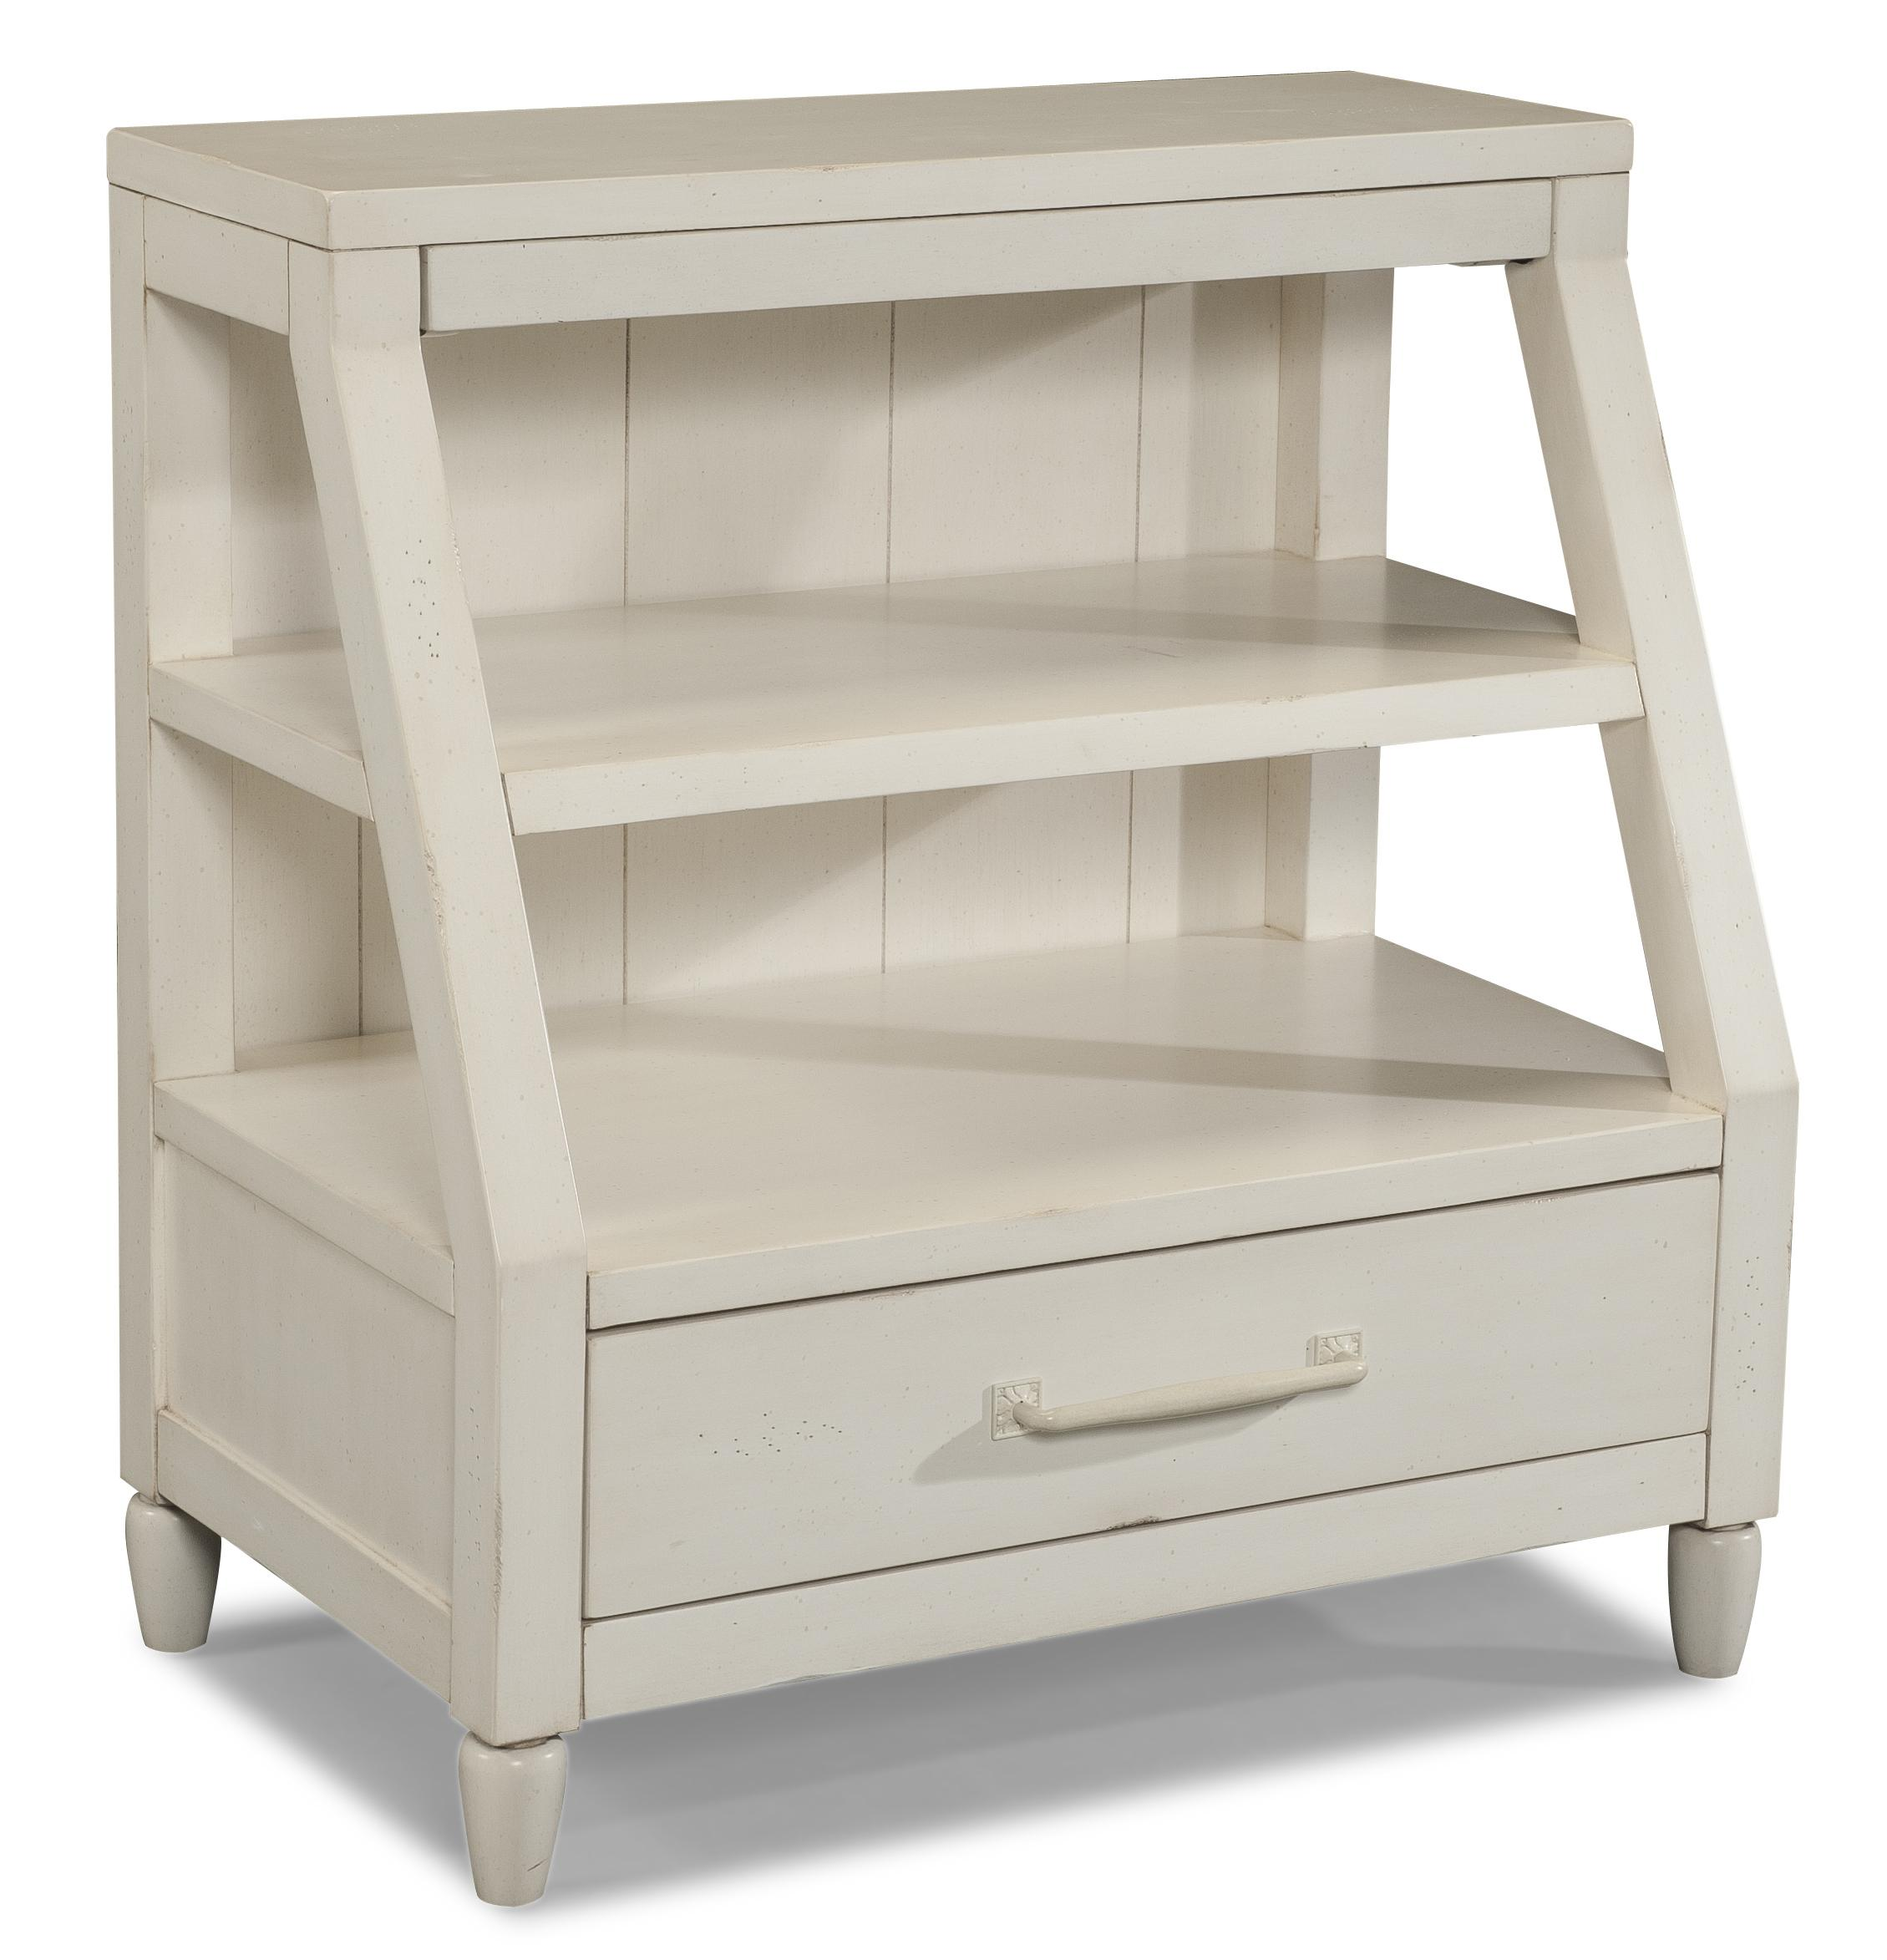 Easton Collection Sea Breeze Sweet Dreamer-White Shelf Nightstand - Item Number: 424-671 NSTD